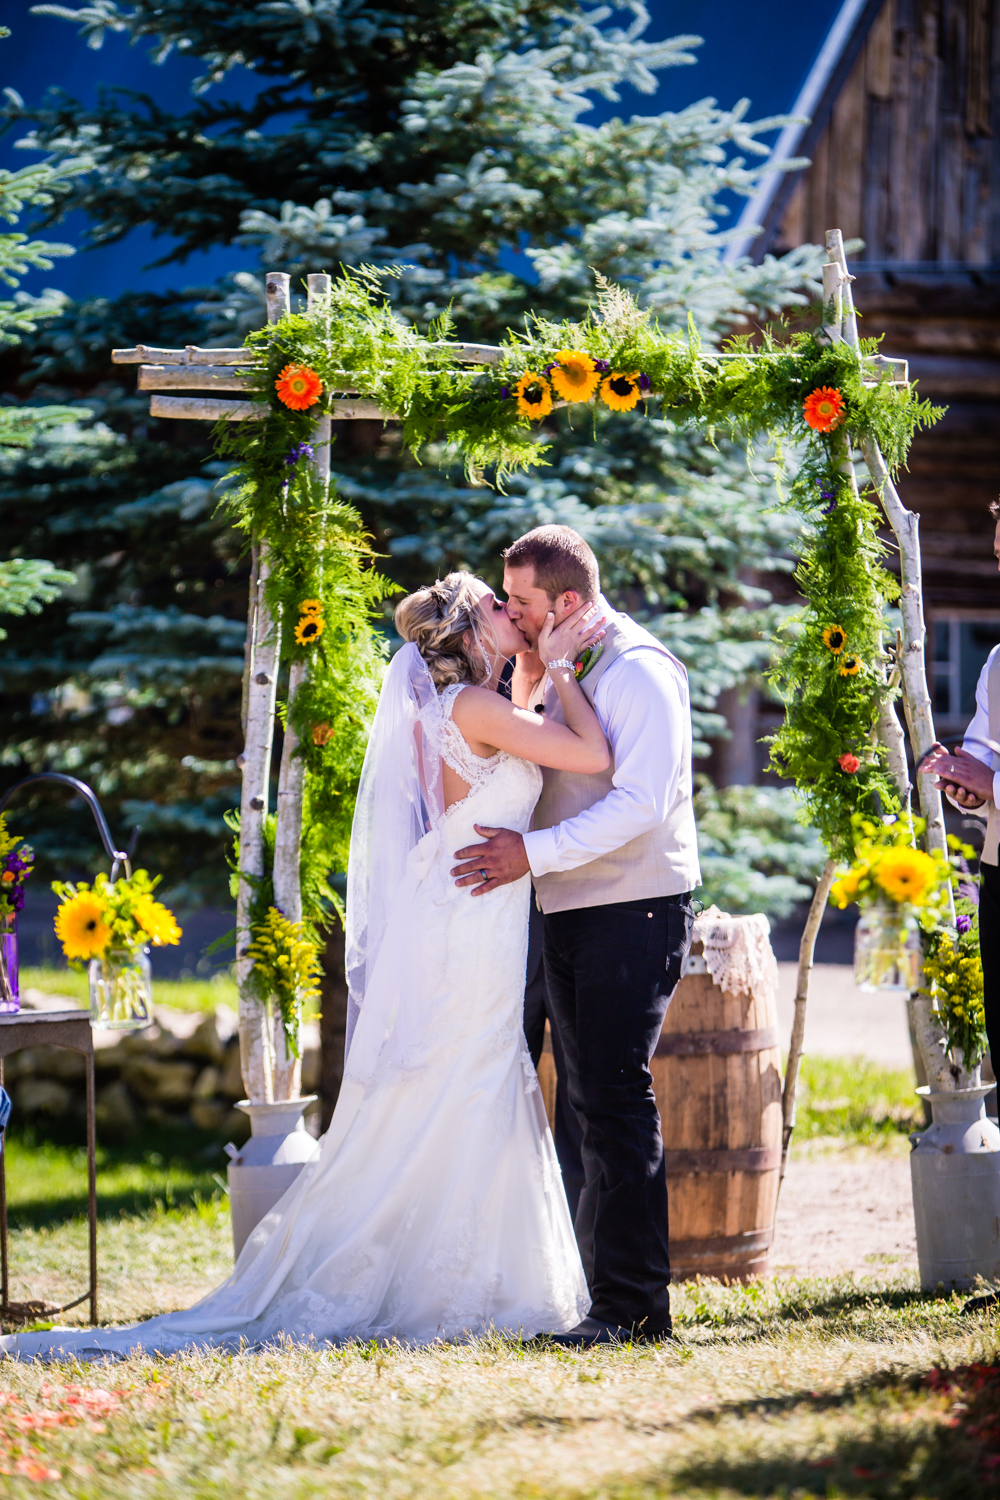 You may kiss the bride. Wedding at The barn at Evergreen Memorial. Photographed by JMGant Photography.